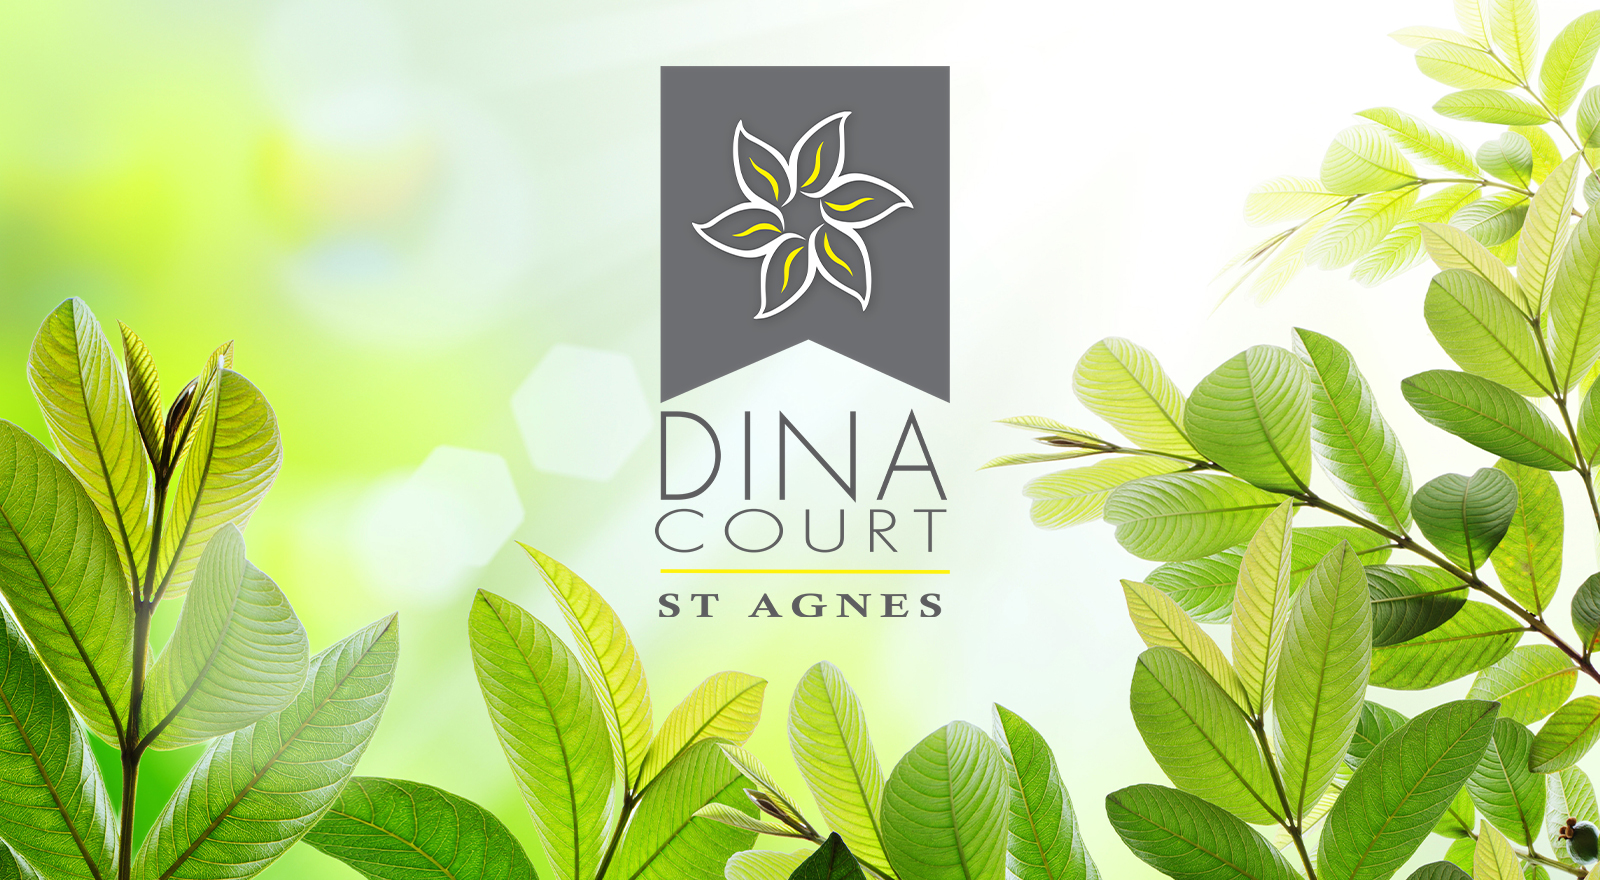 Logo Design for Dina Court St Agnes residential development